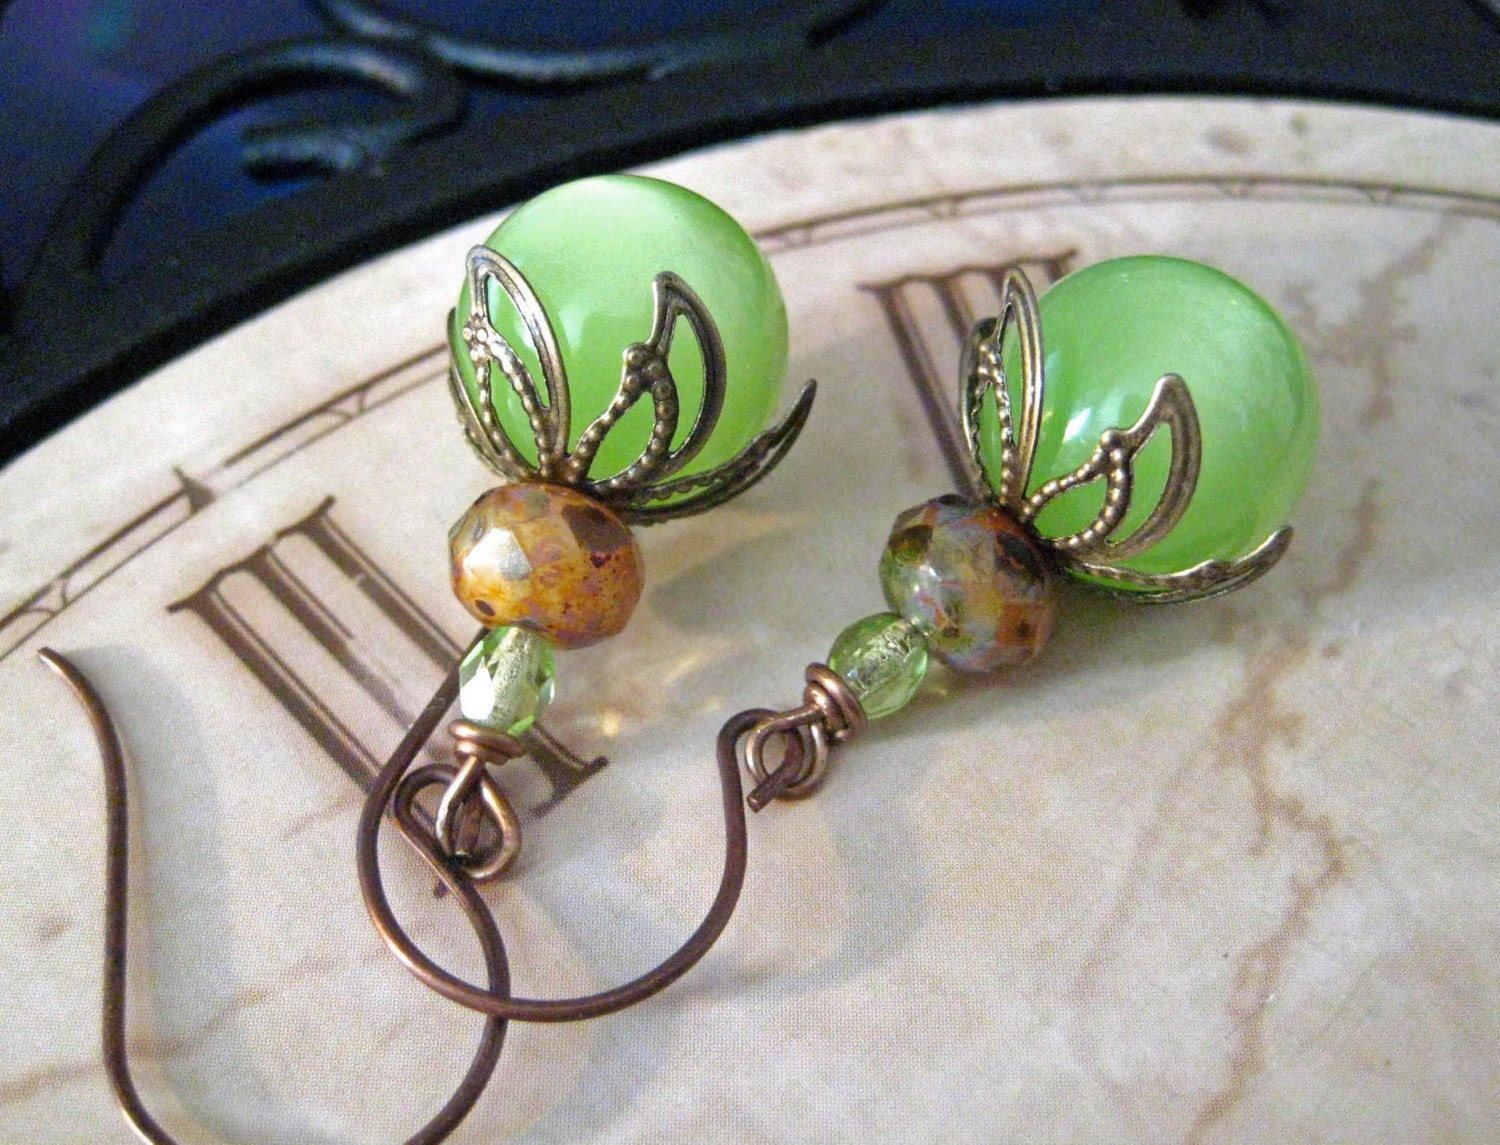 Italian Ice Vintage Inspired Earrings